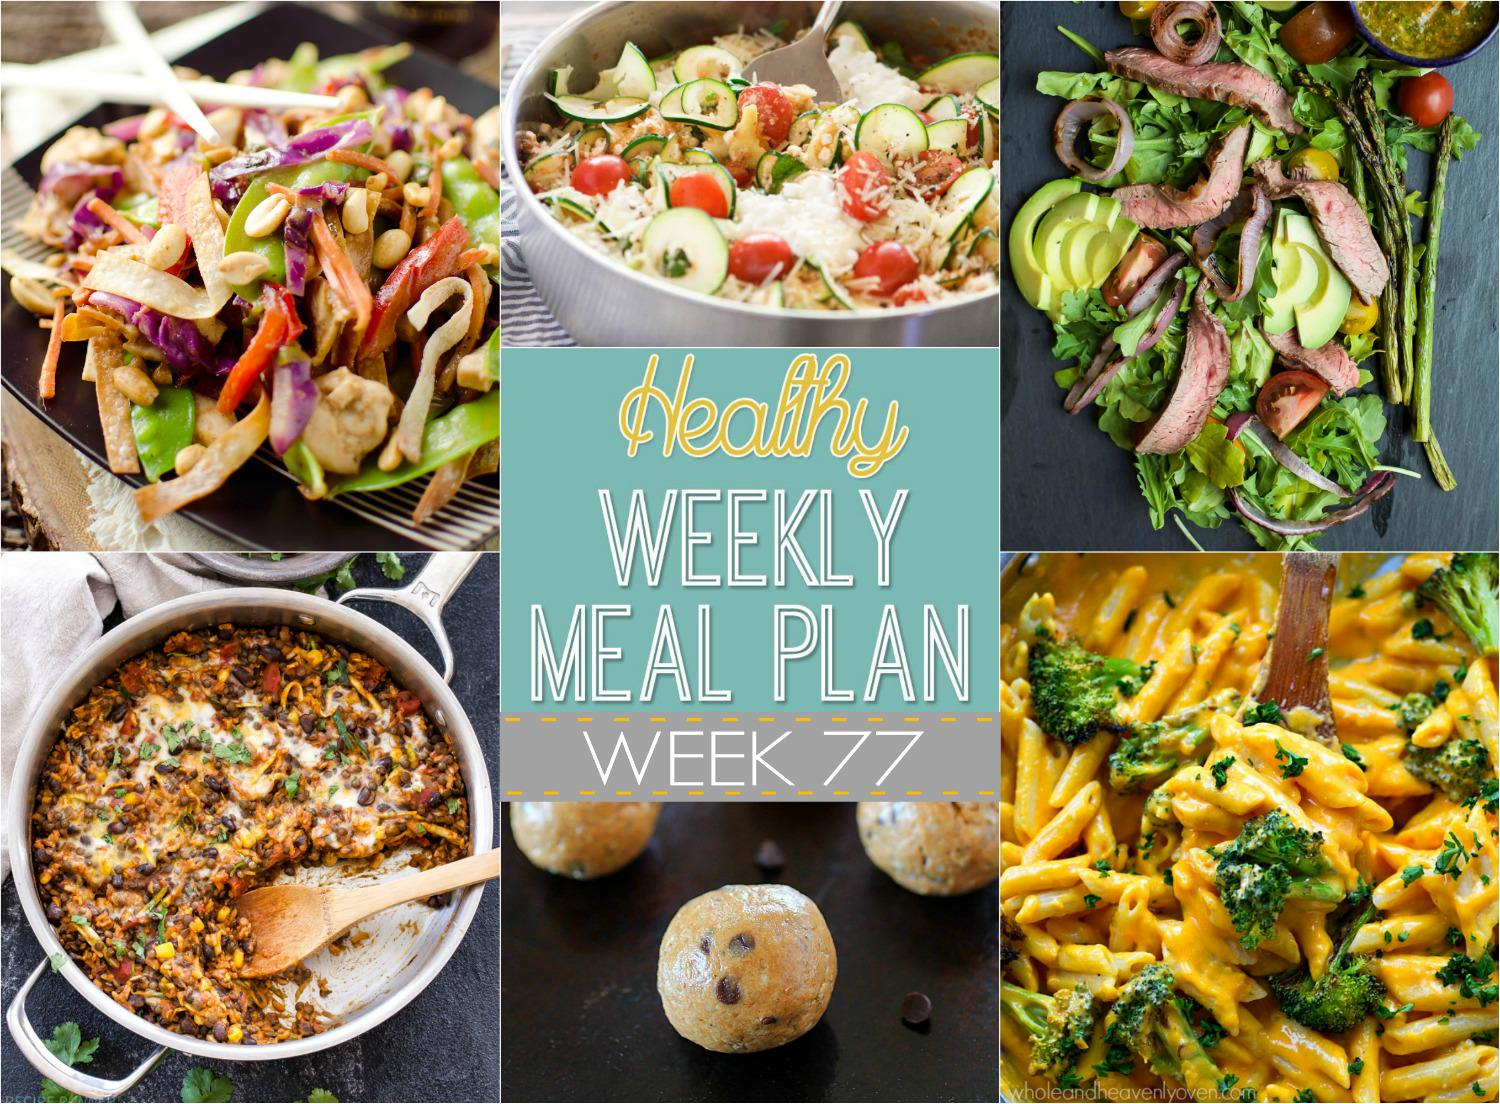 This week's meal plan is filled with winter-comfort dishes; such as butternut squash alfredo pasta, light shrimp friend quinoa, and no bake fudge cookies...because we still need to cure that sweet tooth!